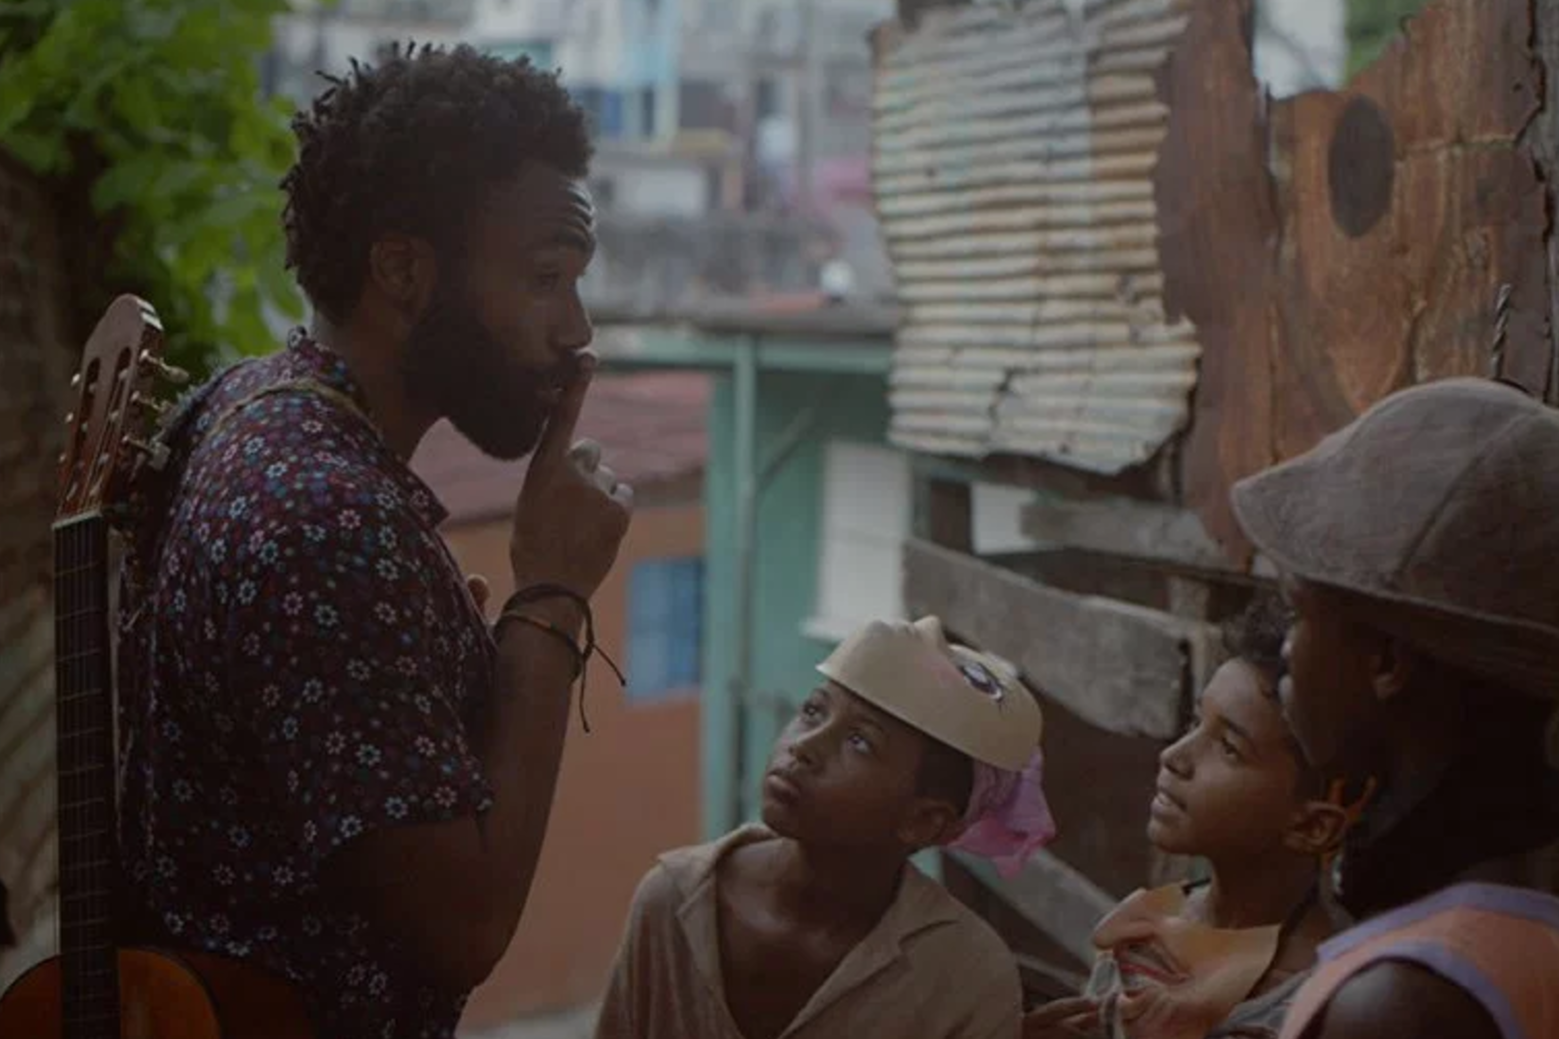 Guava Island: Donald Glover and Rihanna's new film now available on Amazon Prime